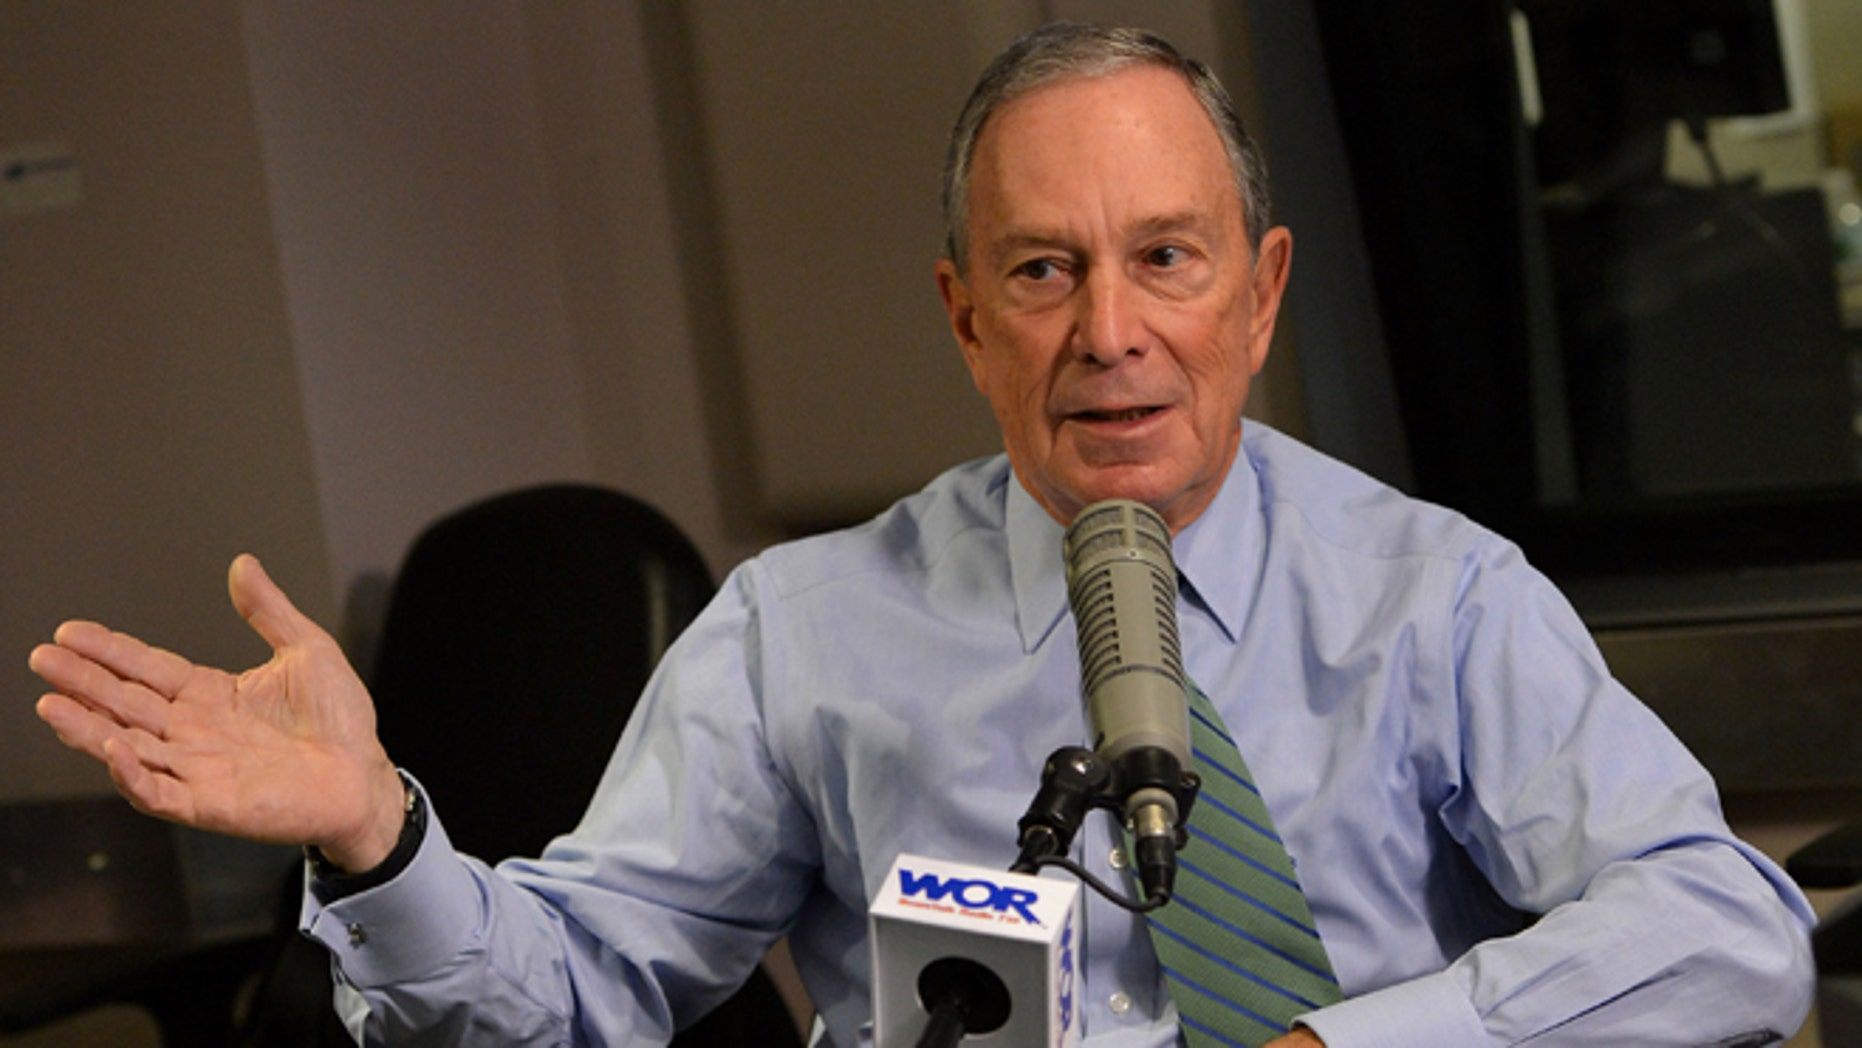 NEW YORK, NY - DECEMBER 20:  Mayor Michael Bloomberg visits John Gambling's final special on WOR 710 AM at WOR Studios on December 20, 2013 in New York City.  (Photo by Slaven Vlasic/Getty Images for Clear Channel)